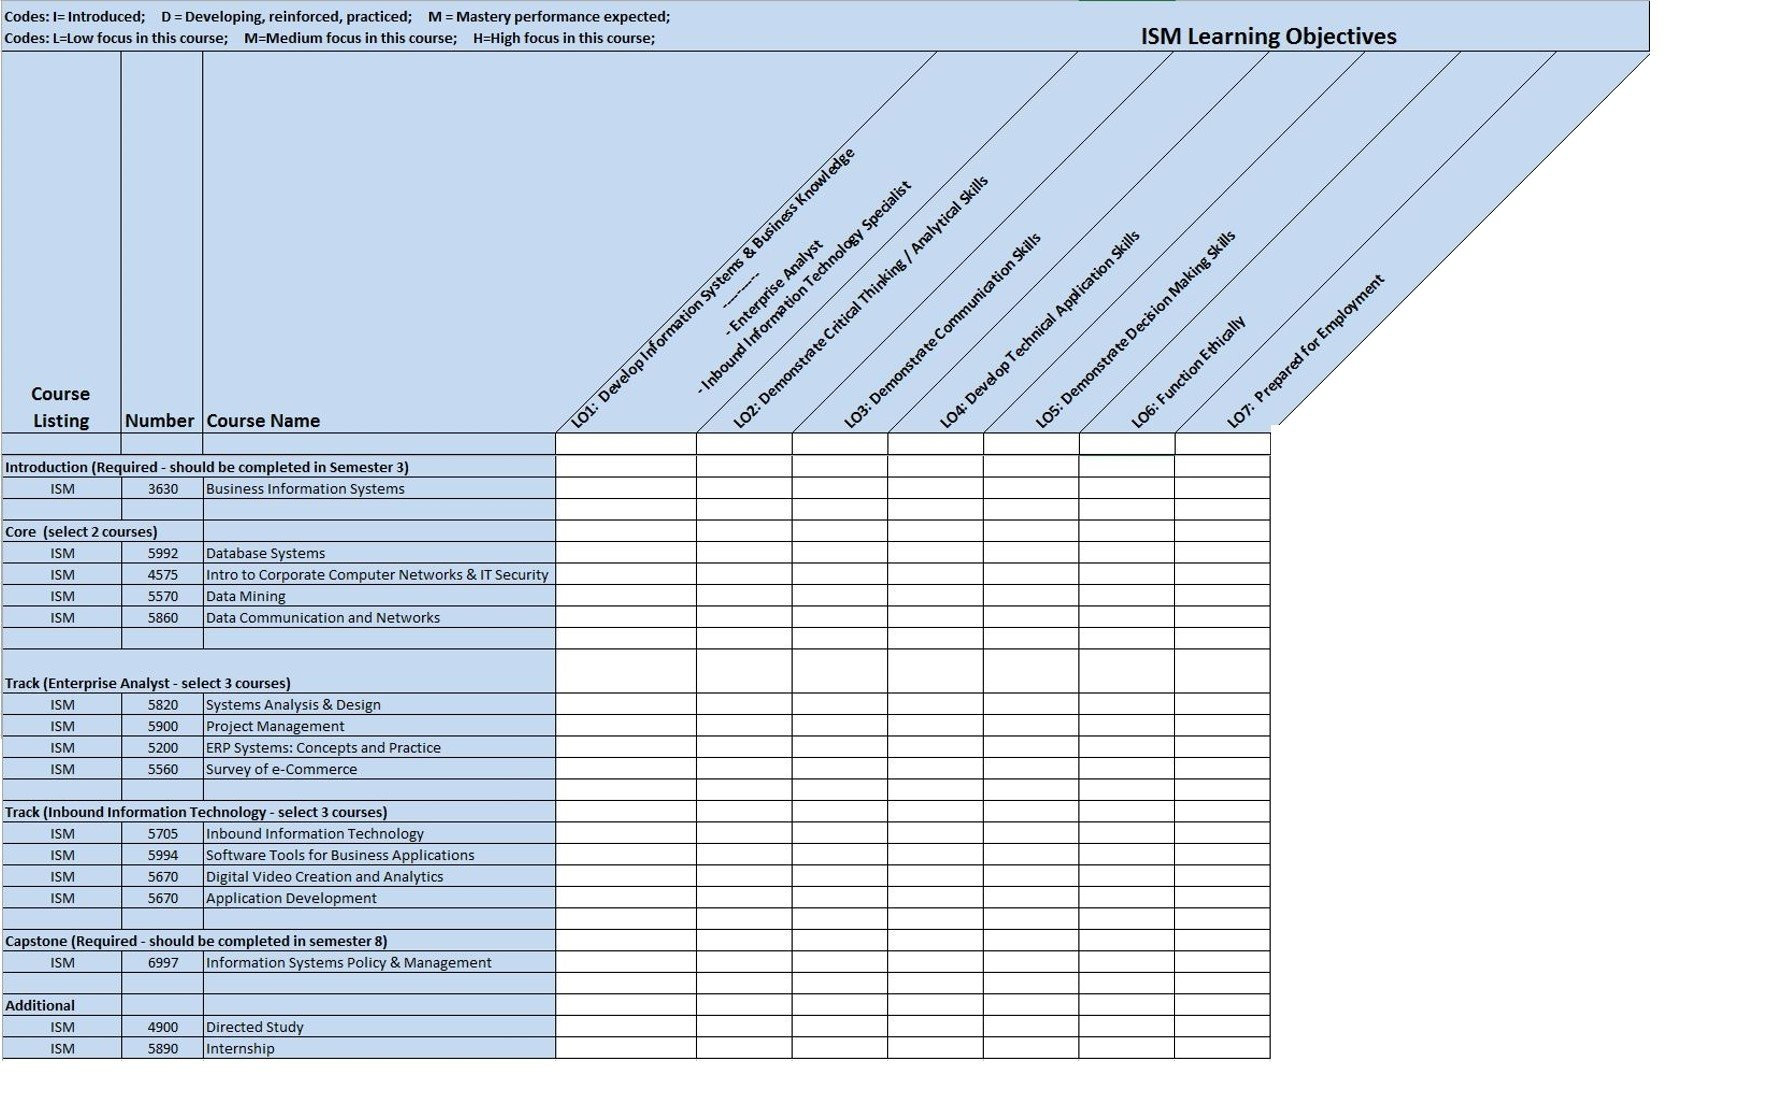 Curriculum Map - Learning Objectives